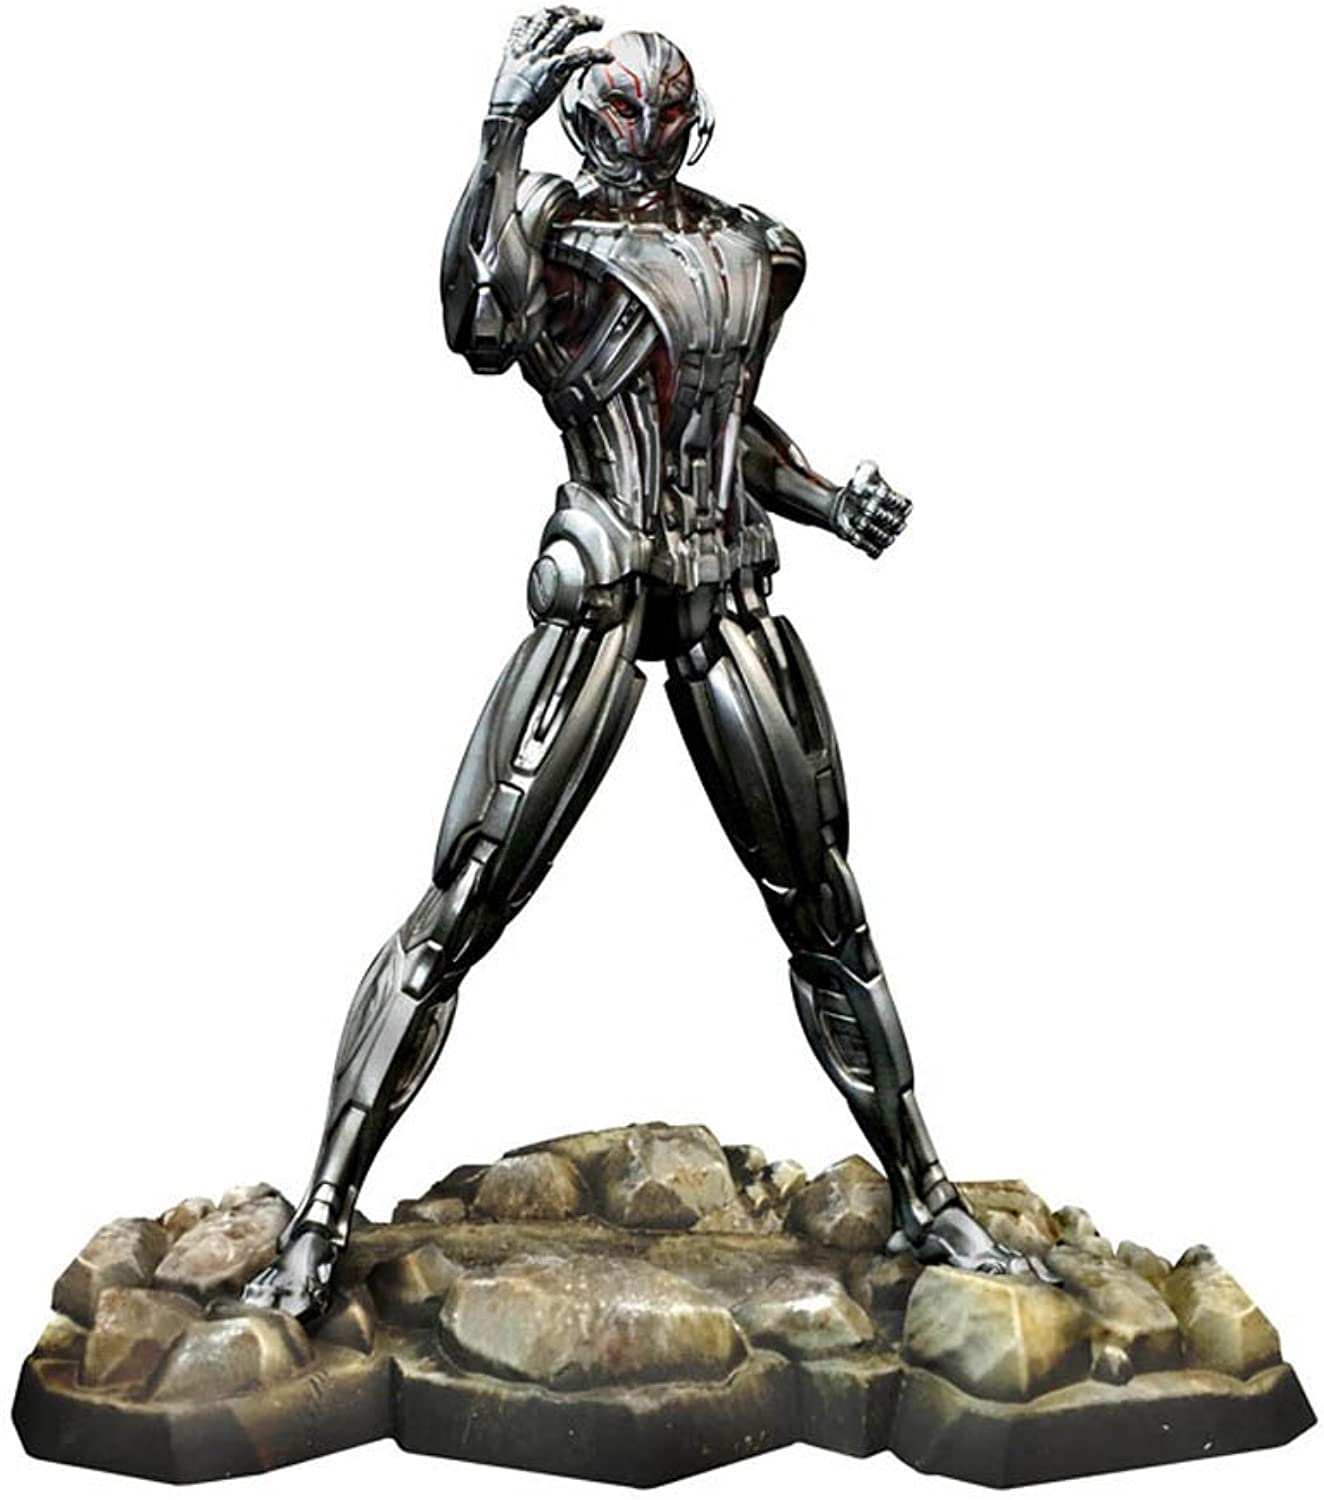 Dragon DRA-38148 Modelle 38148 Mastab 1  9 Age of Ultron (Multi-Pose Version), Action Hero Vignette, Mehrfarbig